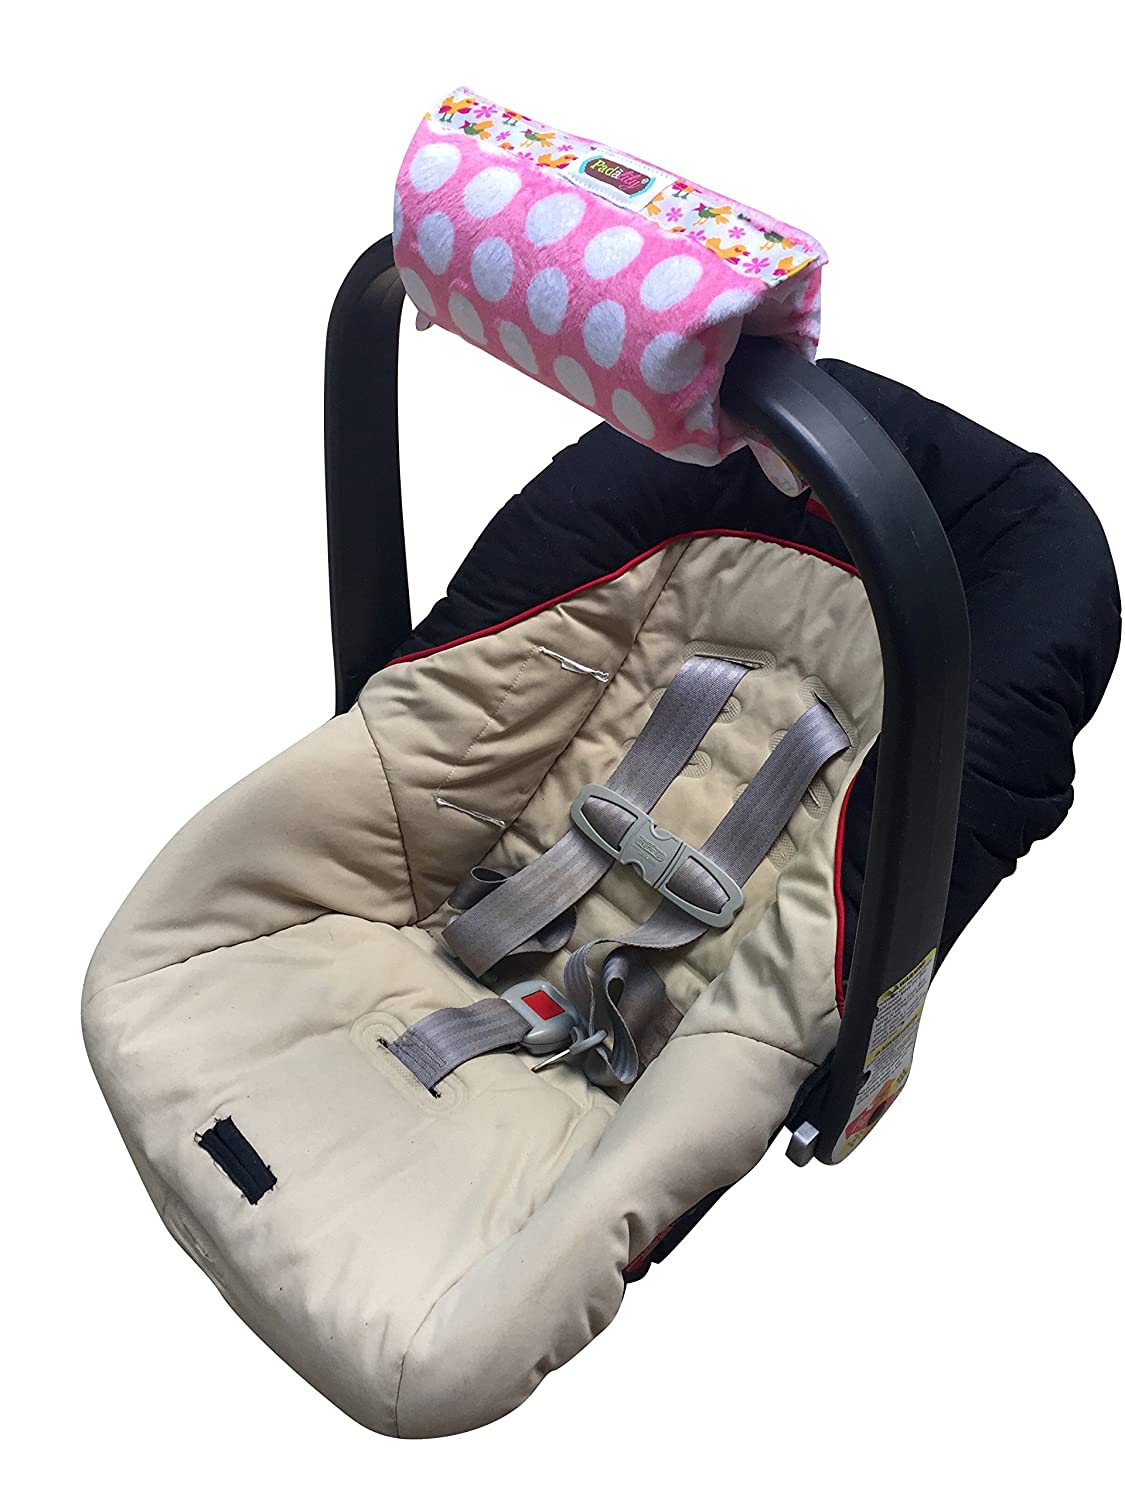 Girl Whales Arm Cushion for Infant Car Seat The Padalily Handle Cushion